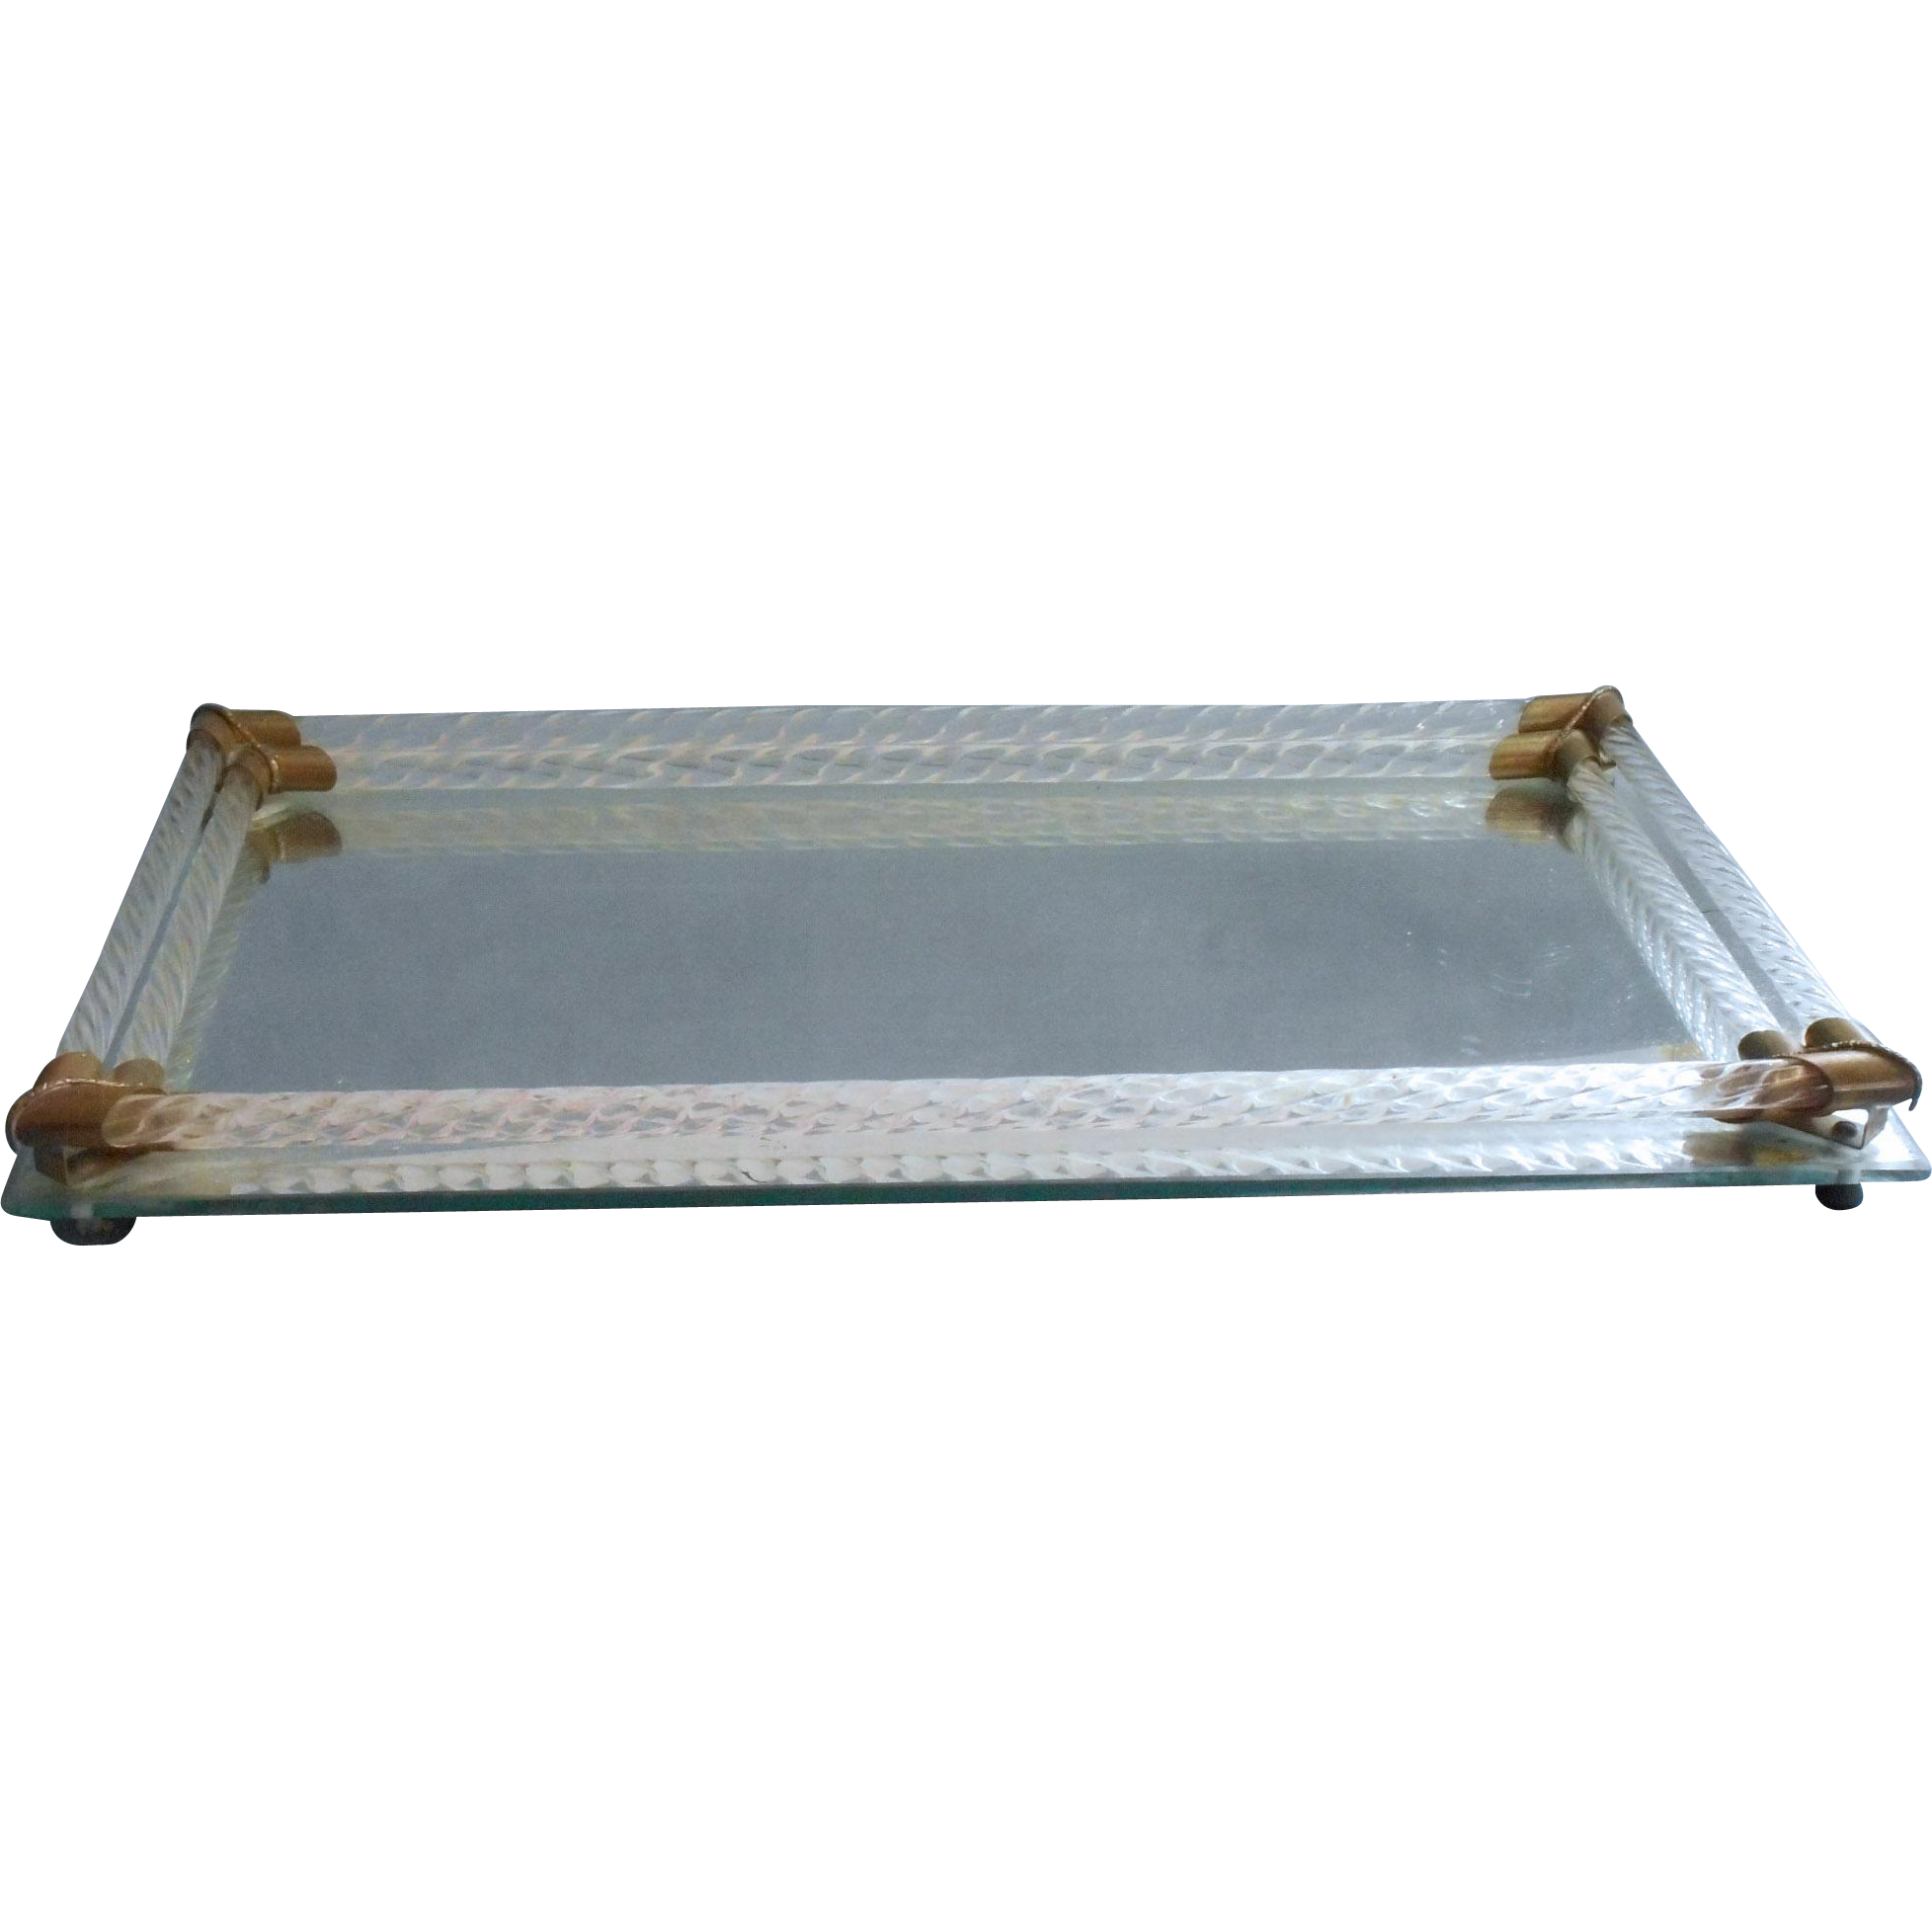 Antique vanity tray with lace insert - Vintage Glass Mirror Perfume Tray 1930s To 1940s Vanity